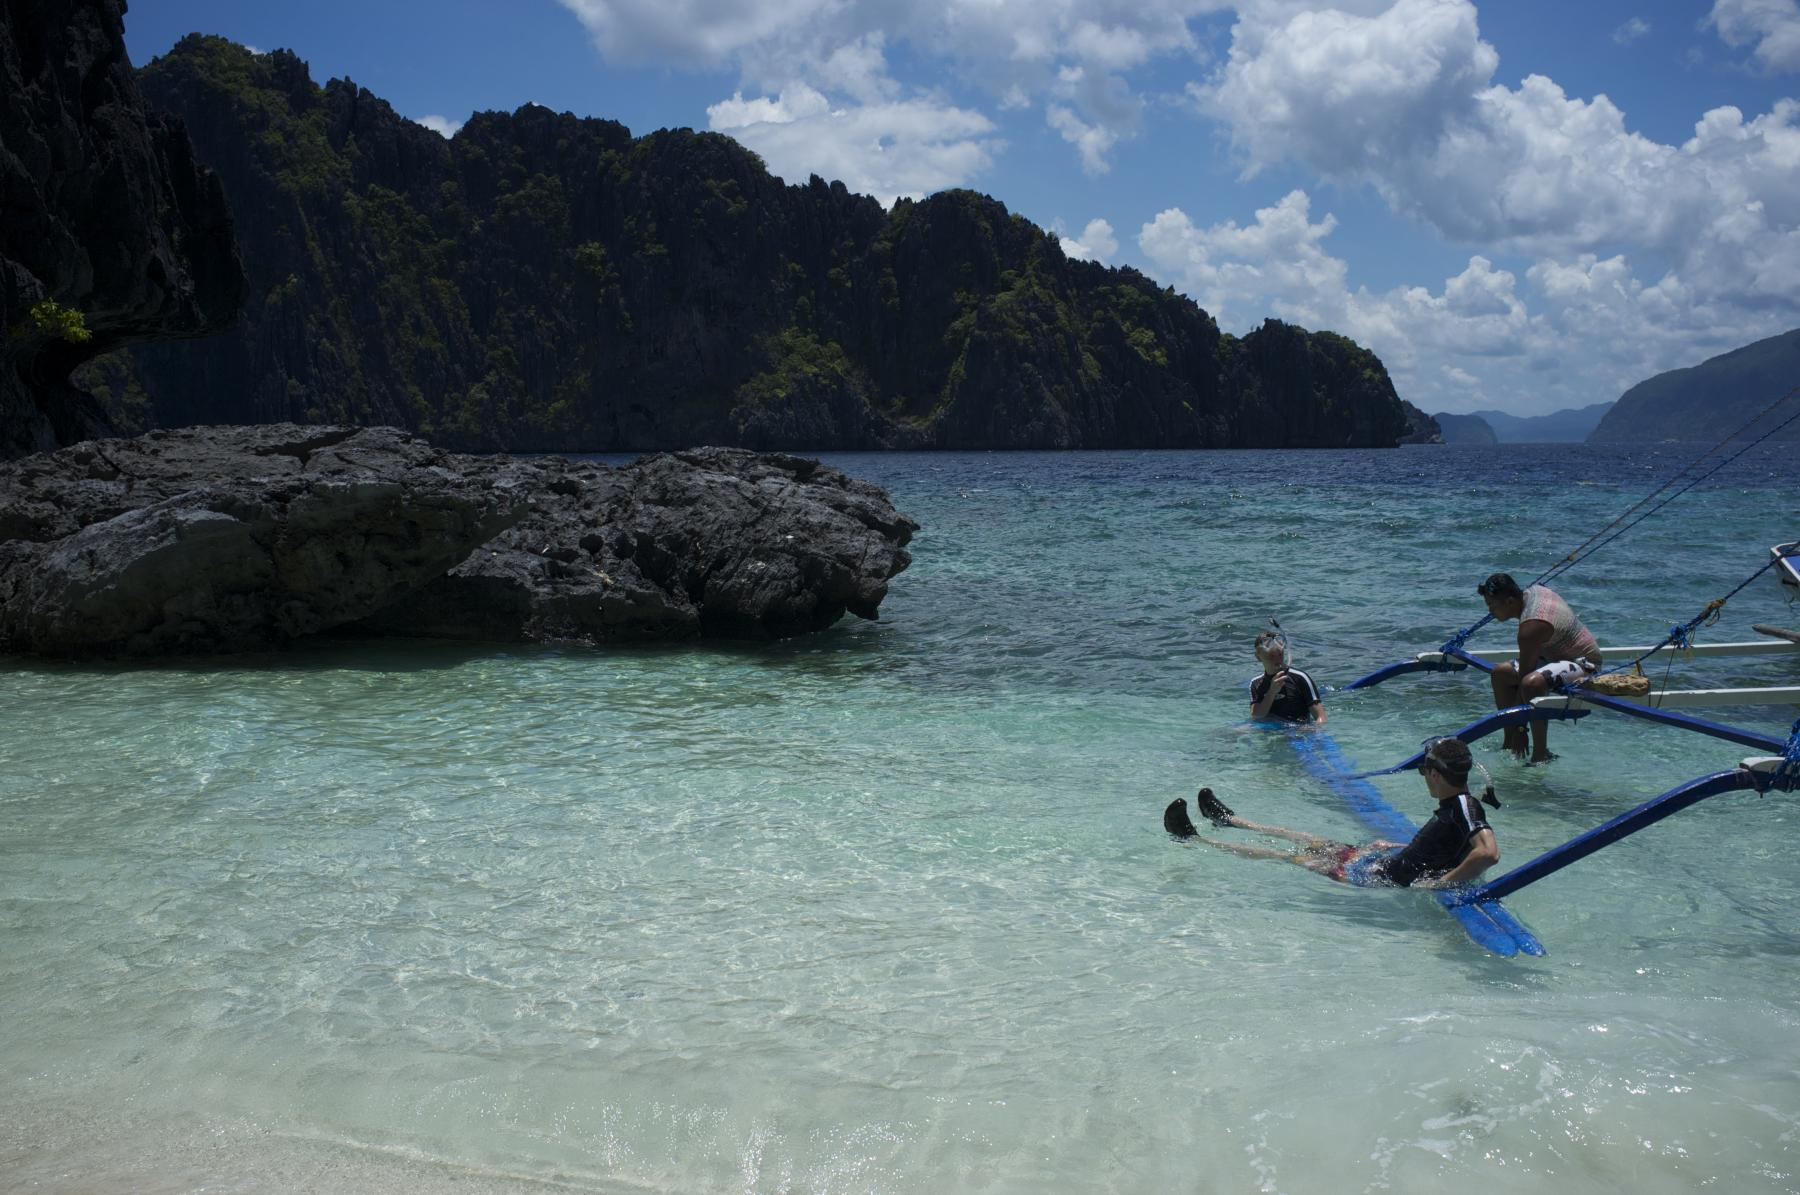 A sublime beauty of El Nido with lagoons, beaches, rocks, and underground river starting at Puerto Princesa, Palawan, Philippines